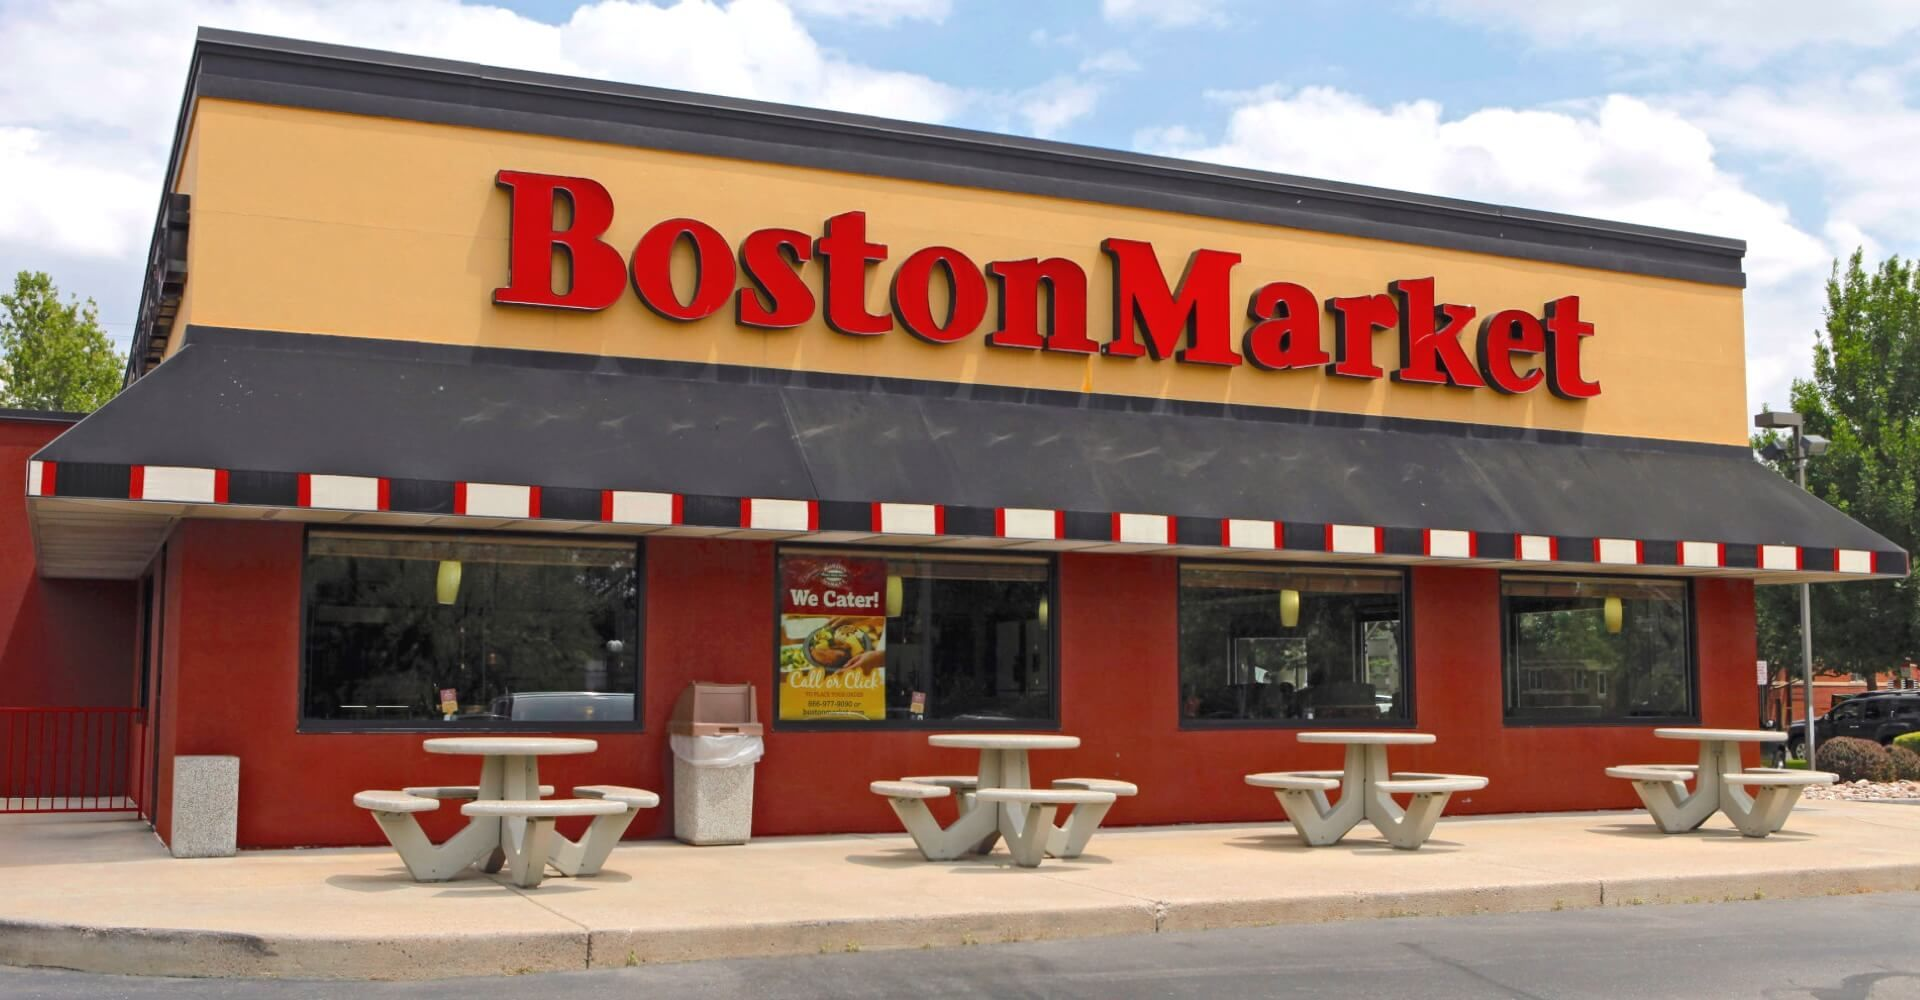 TellBostonMarket Boston market, Customer survey, Fast